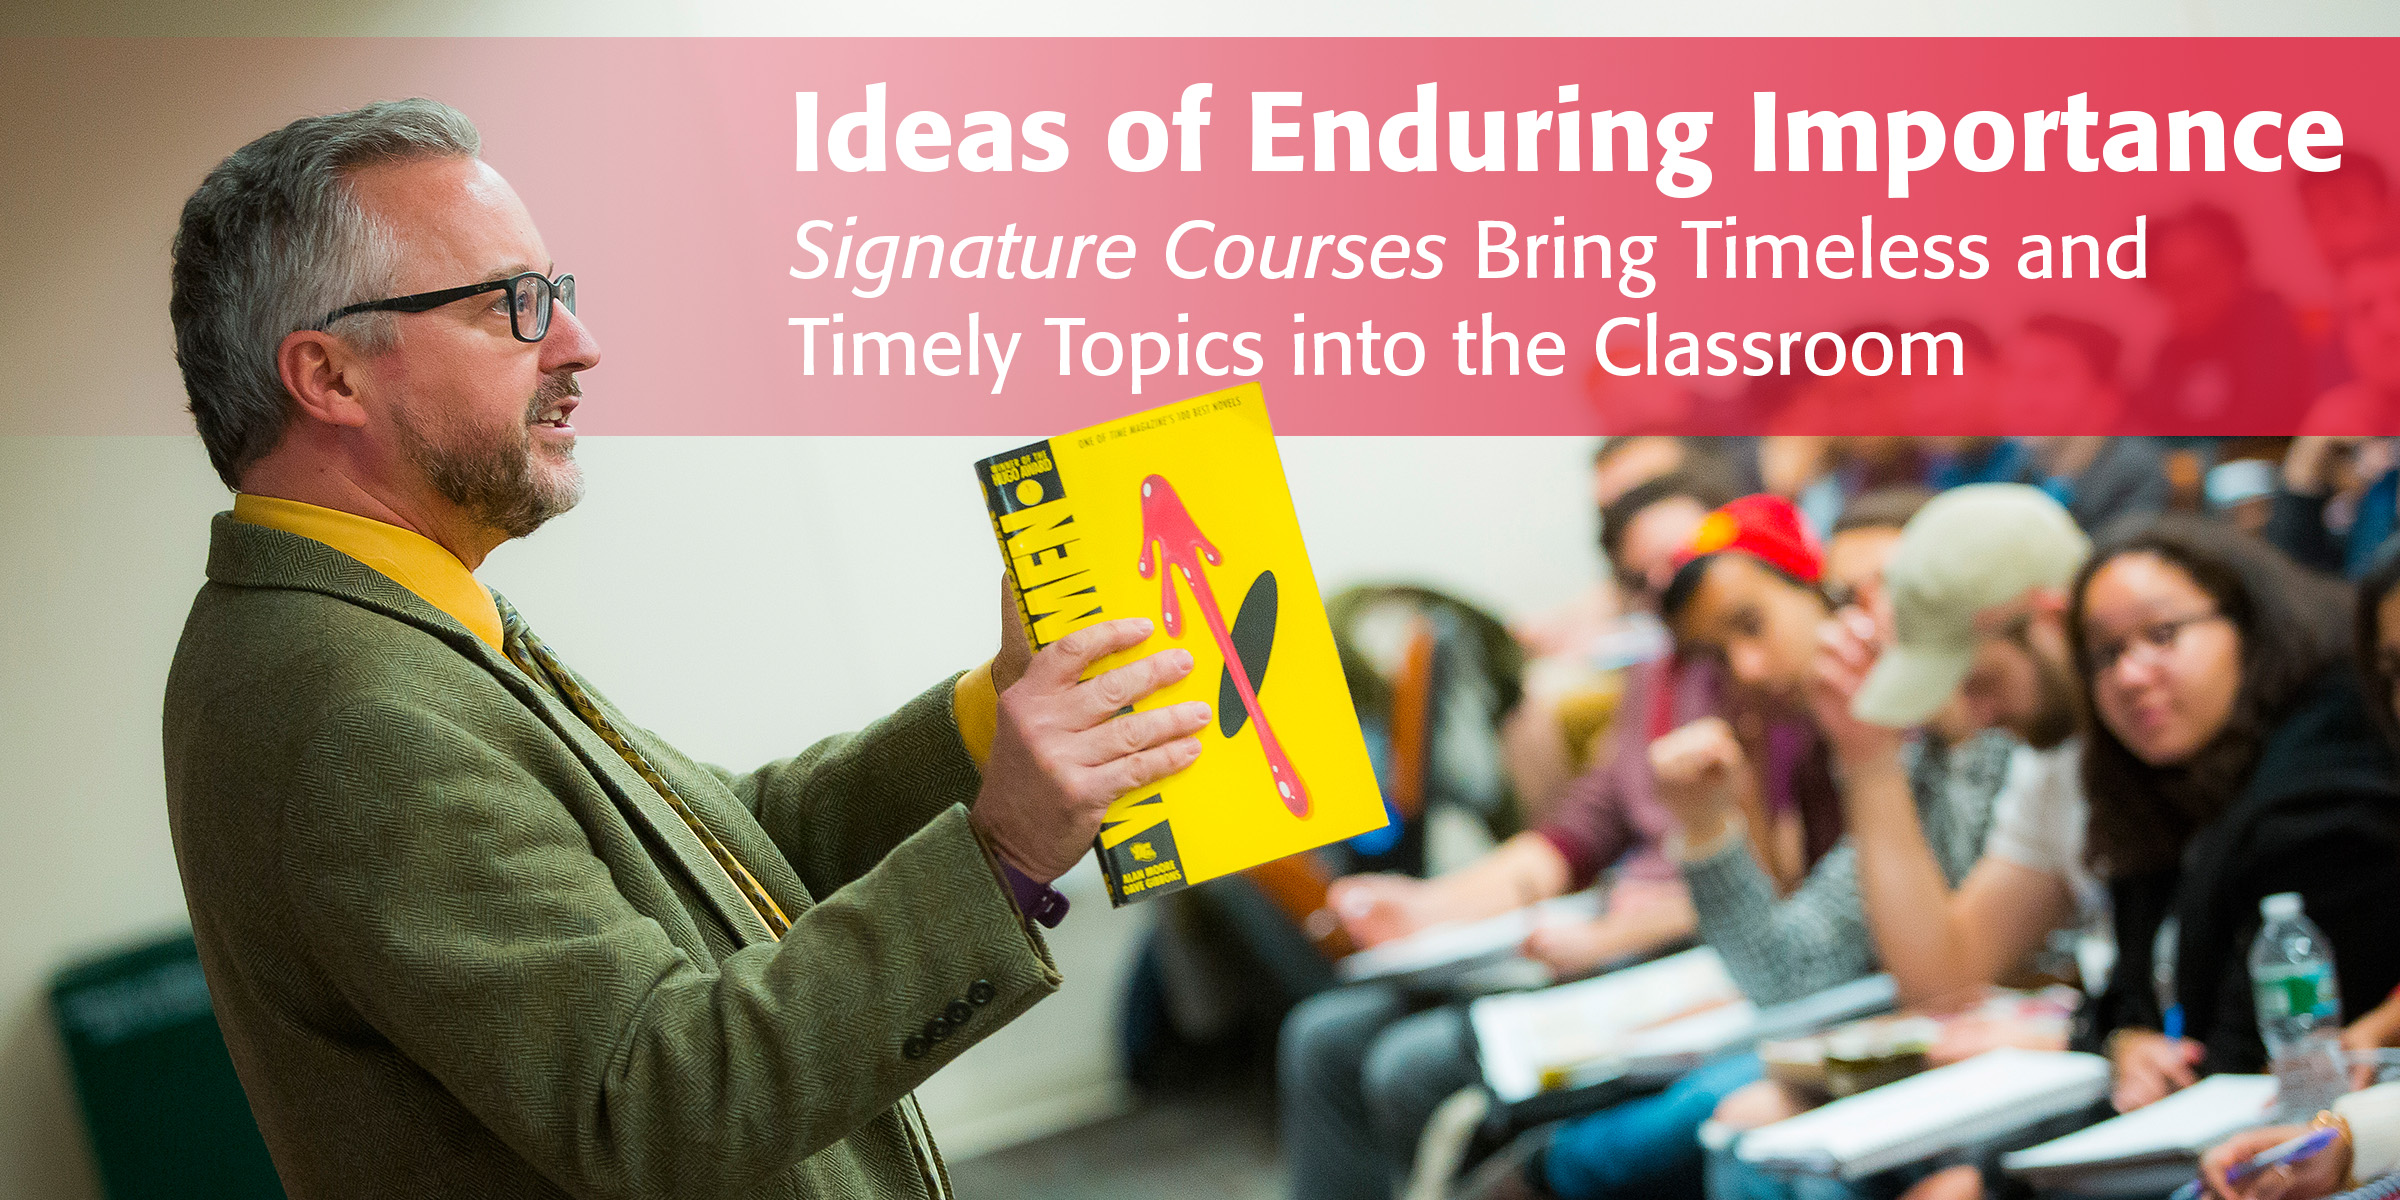 Signature Courses Bring Timeless and Timely Topics into the Classroom